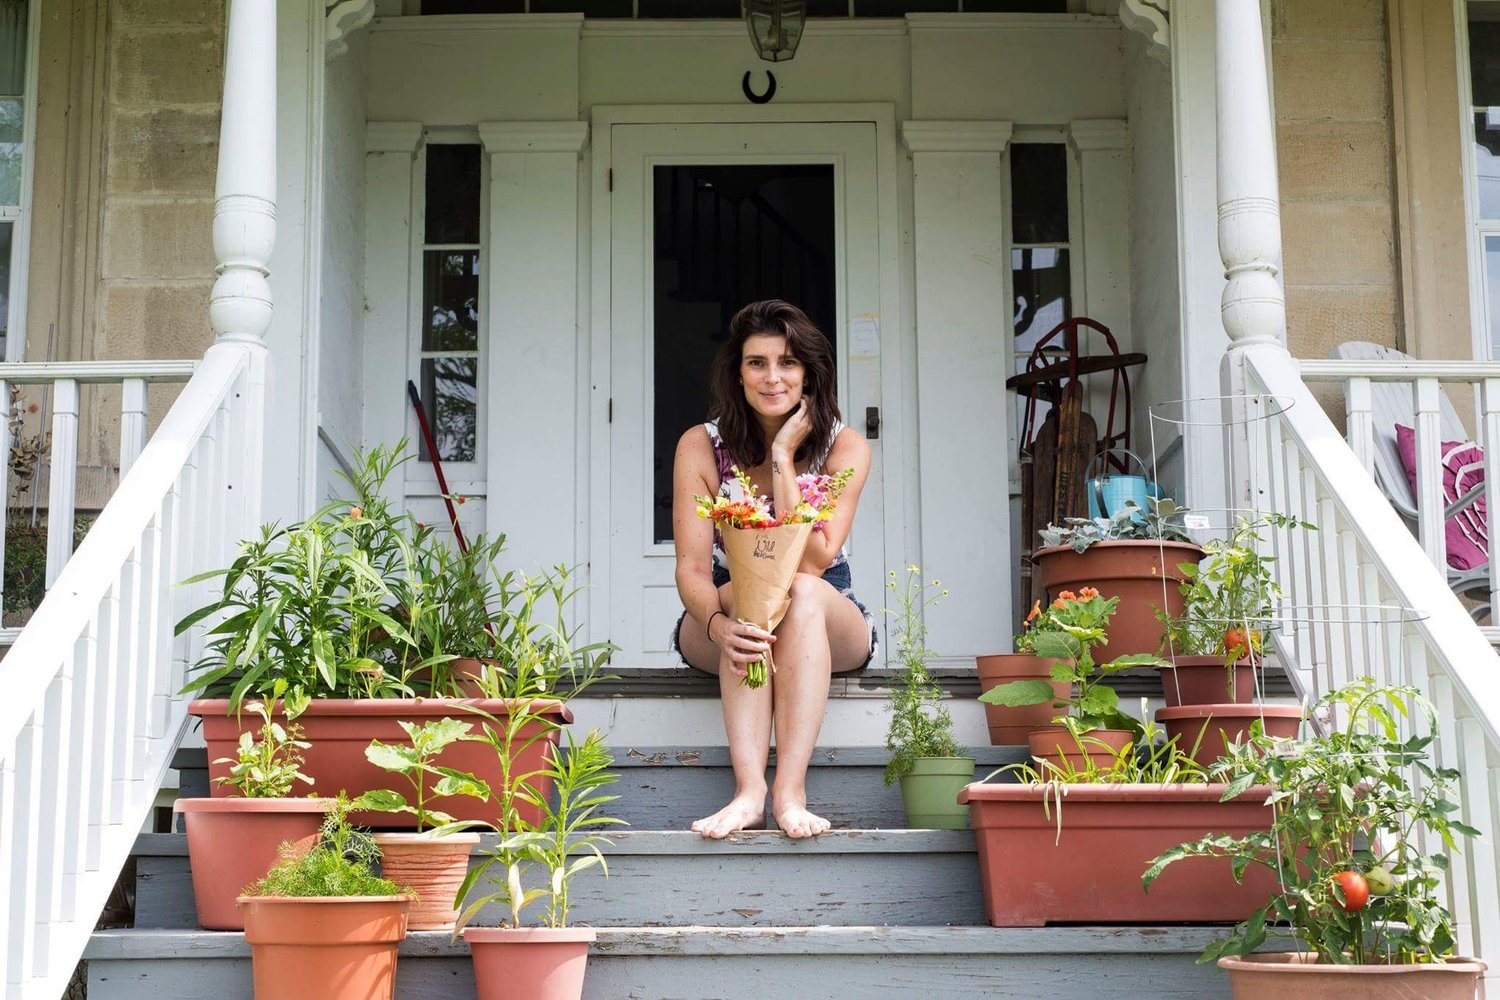 Megh Wingenfeld, flower farmer, poses on her porch surrounded by containers of plants